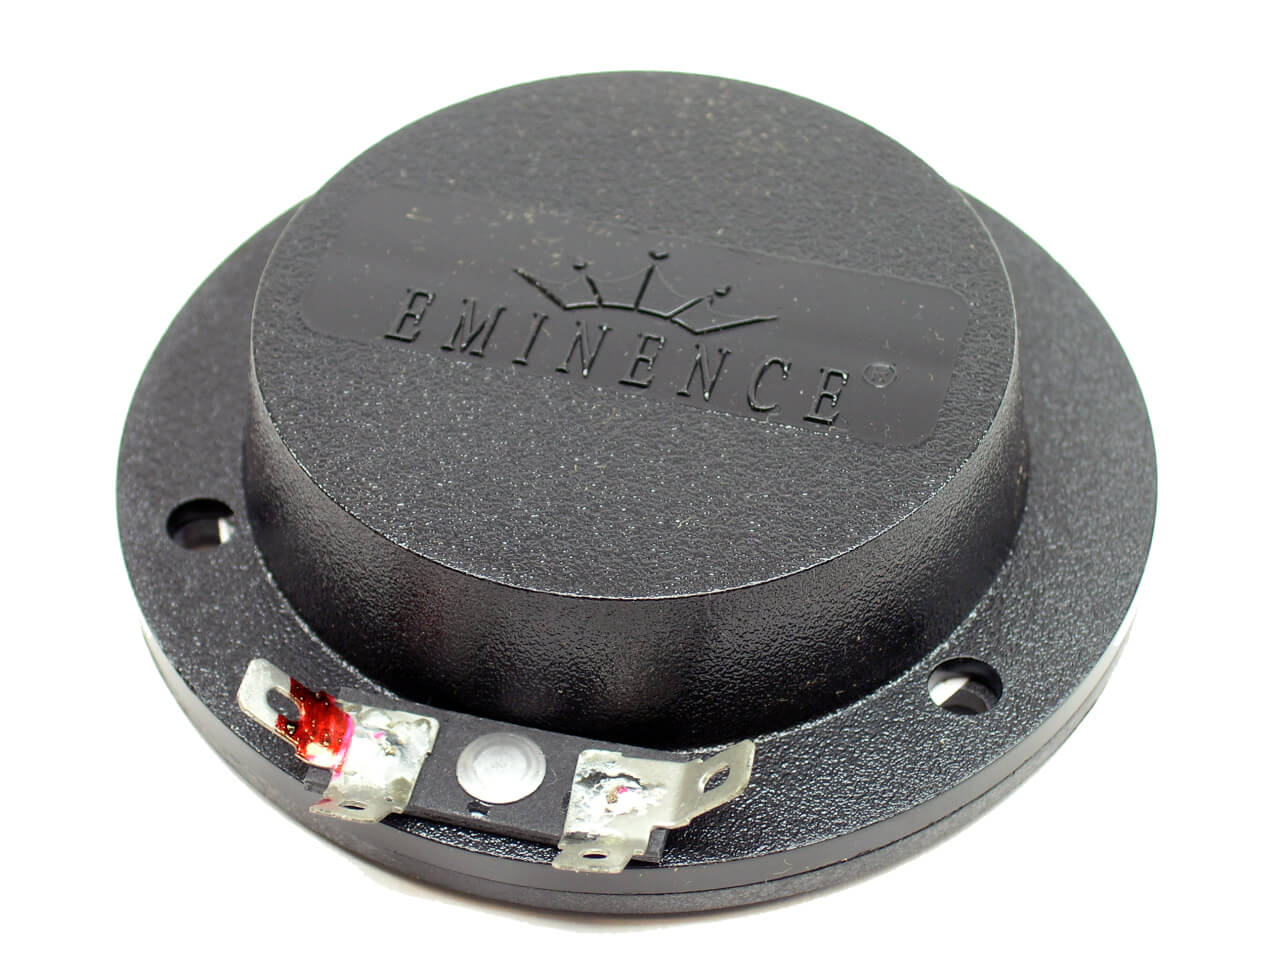 Yamaha Eminence Factory Horn Driver Diaphragm, Type 1, 16 Ohms, MD2001-16DIA